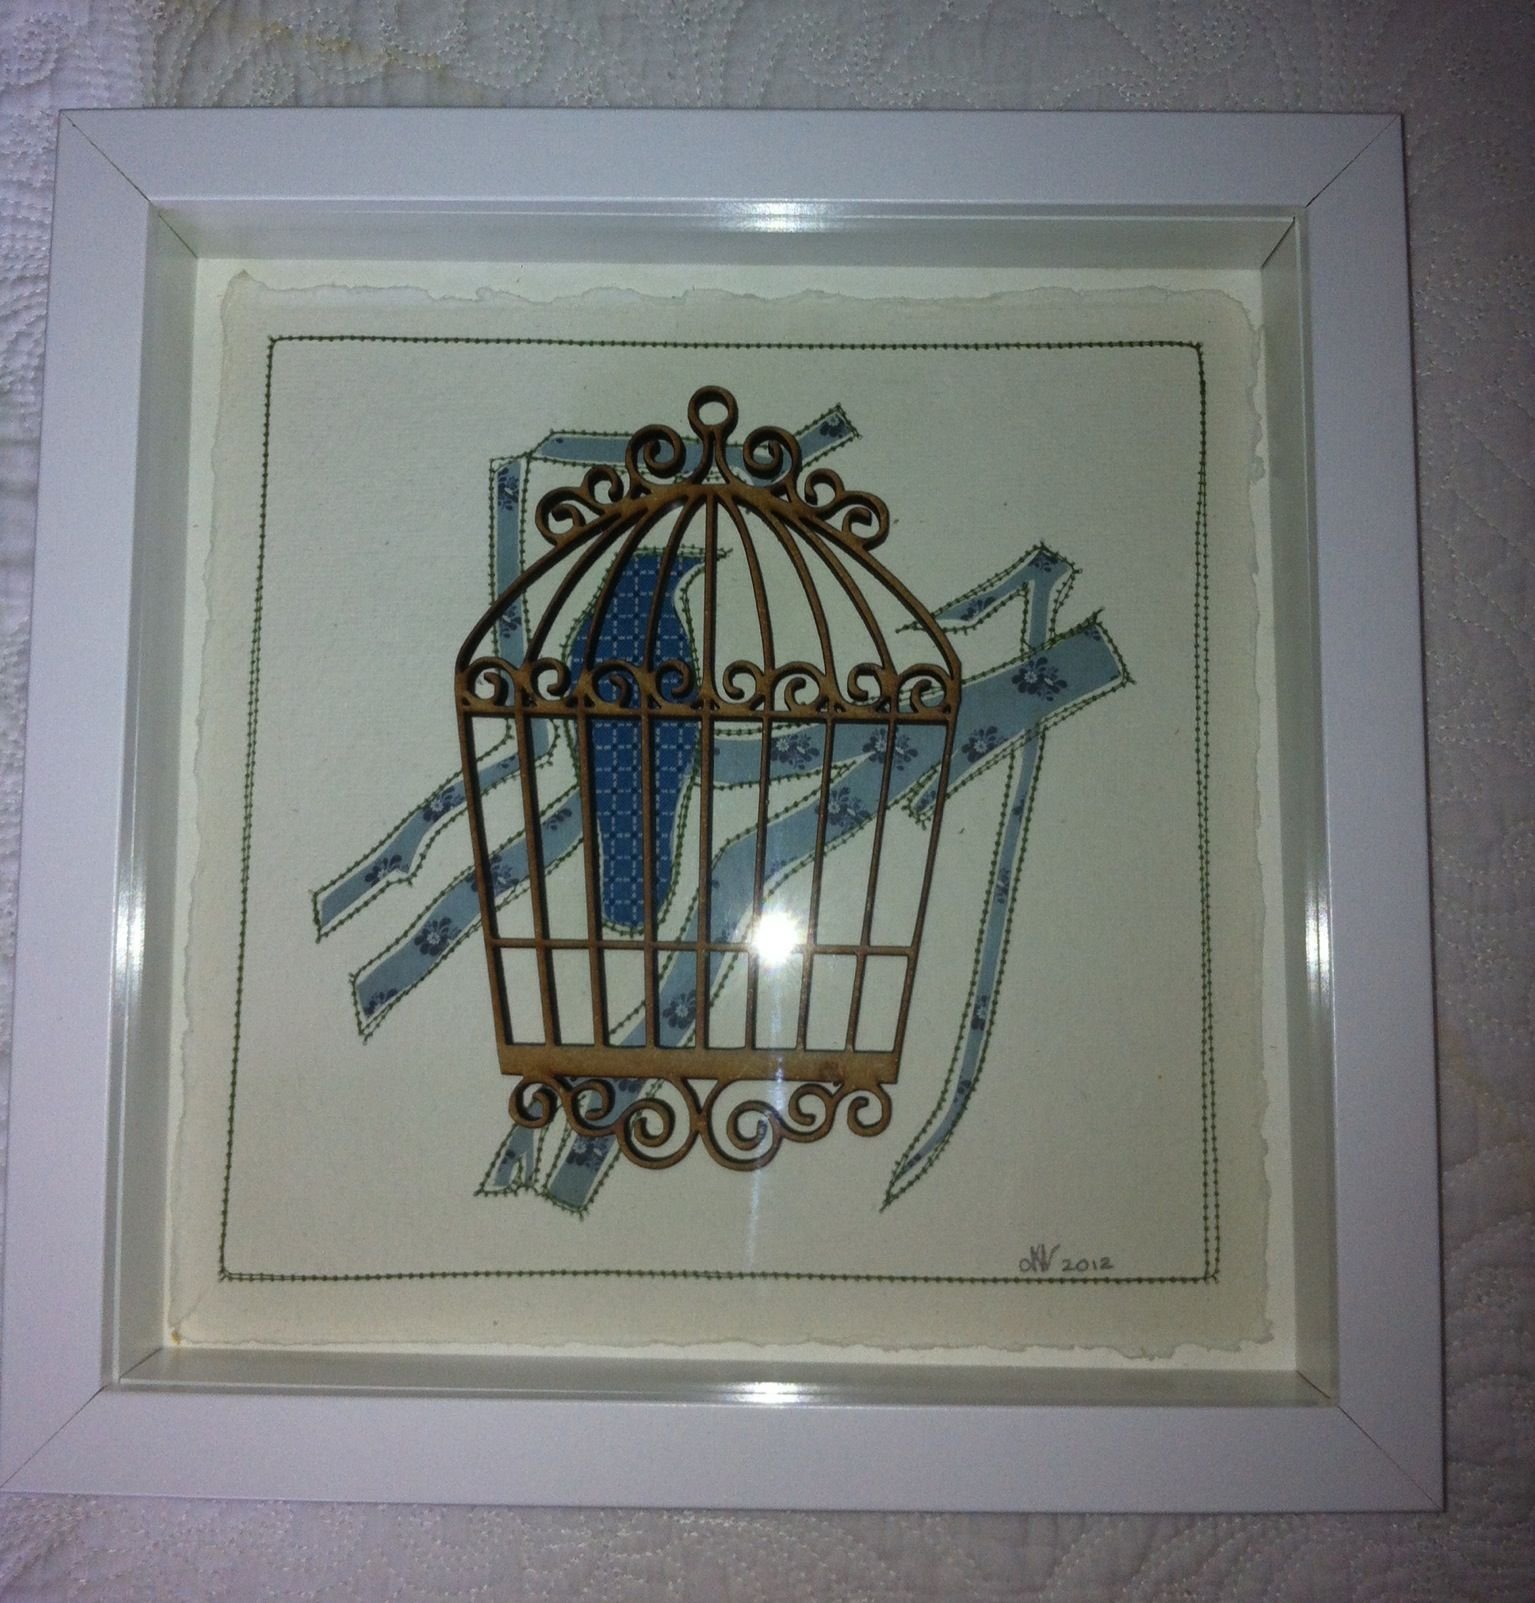 Laser cut bird cage, hand cut paper and stitch - artist Laura Drayson